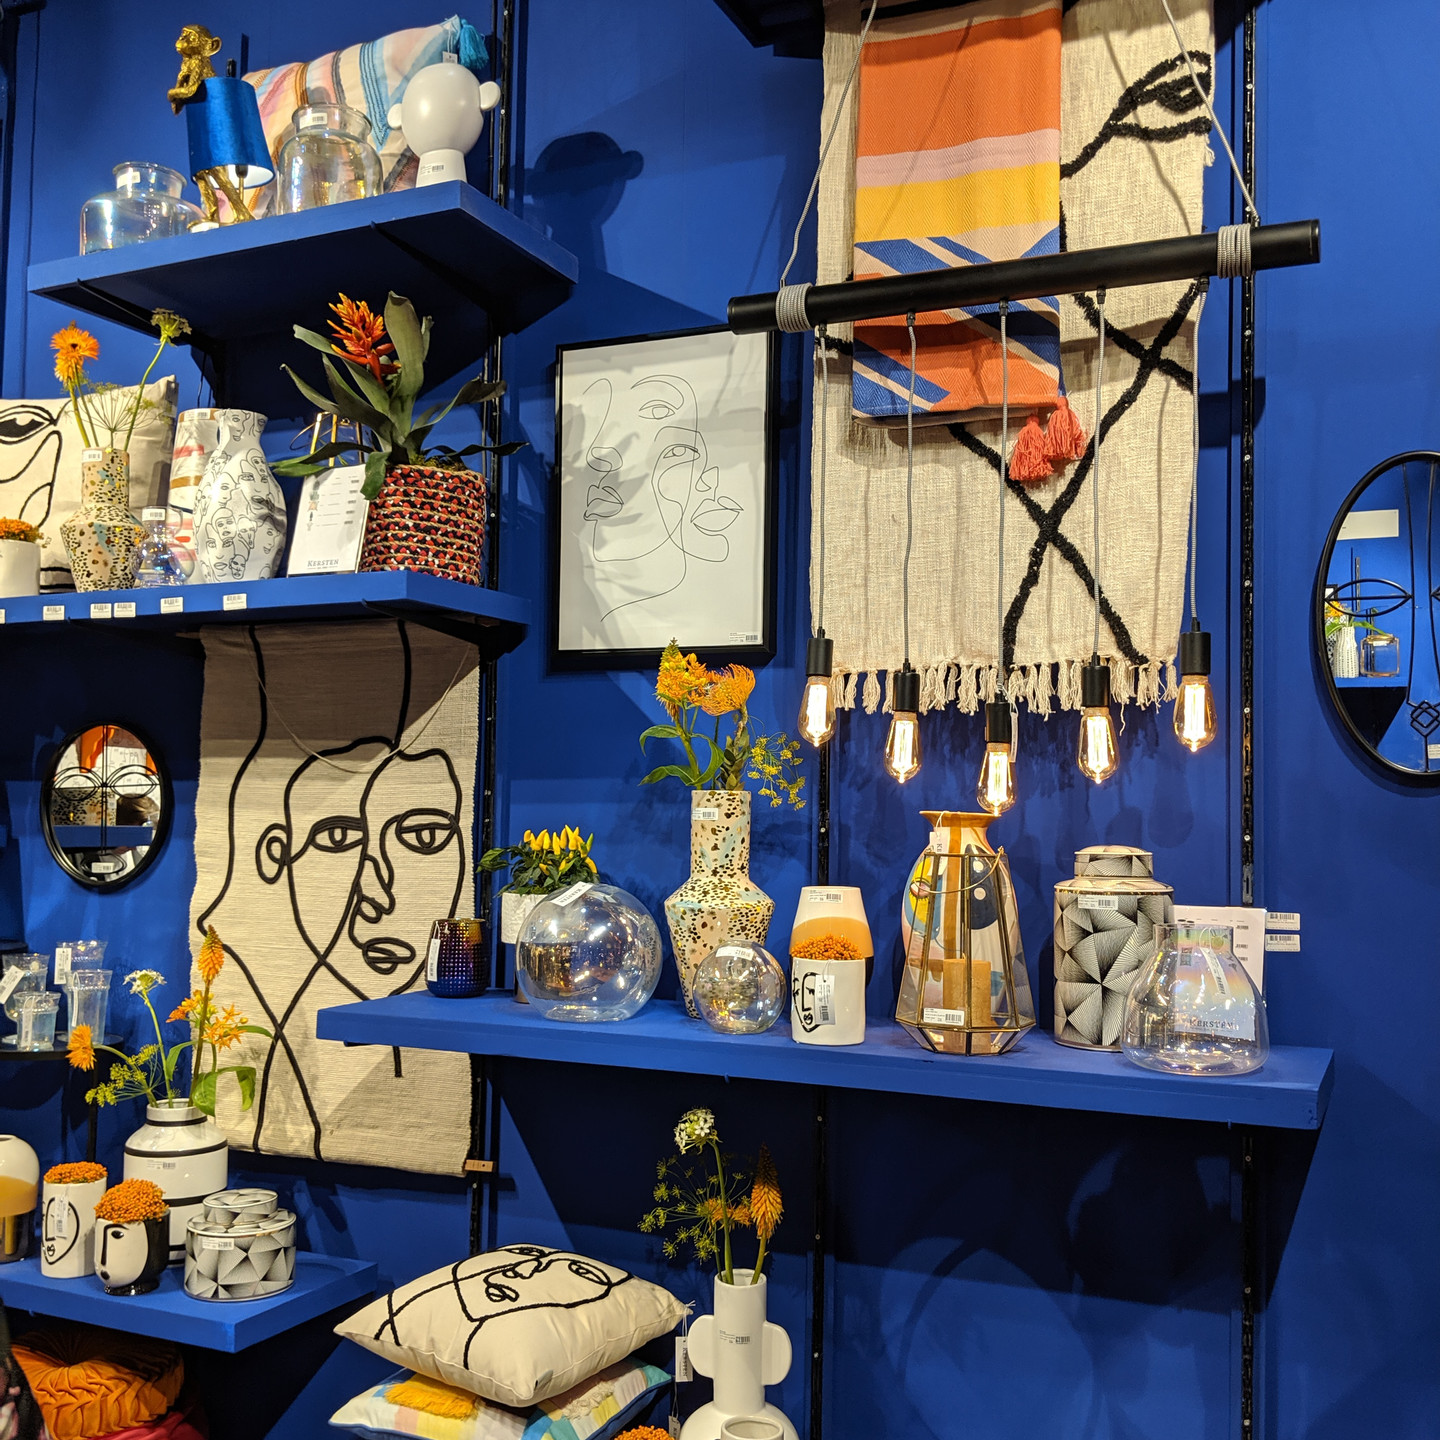 Neutral Home Decor Display on on Bright Blue Wall with Blue Built-In Shelves